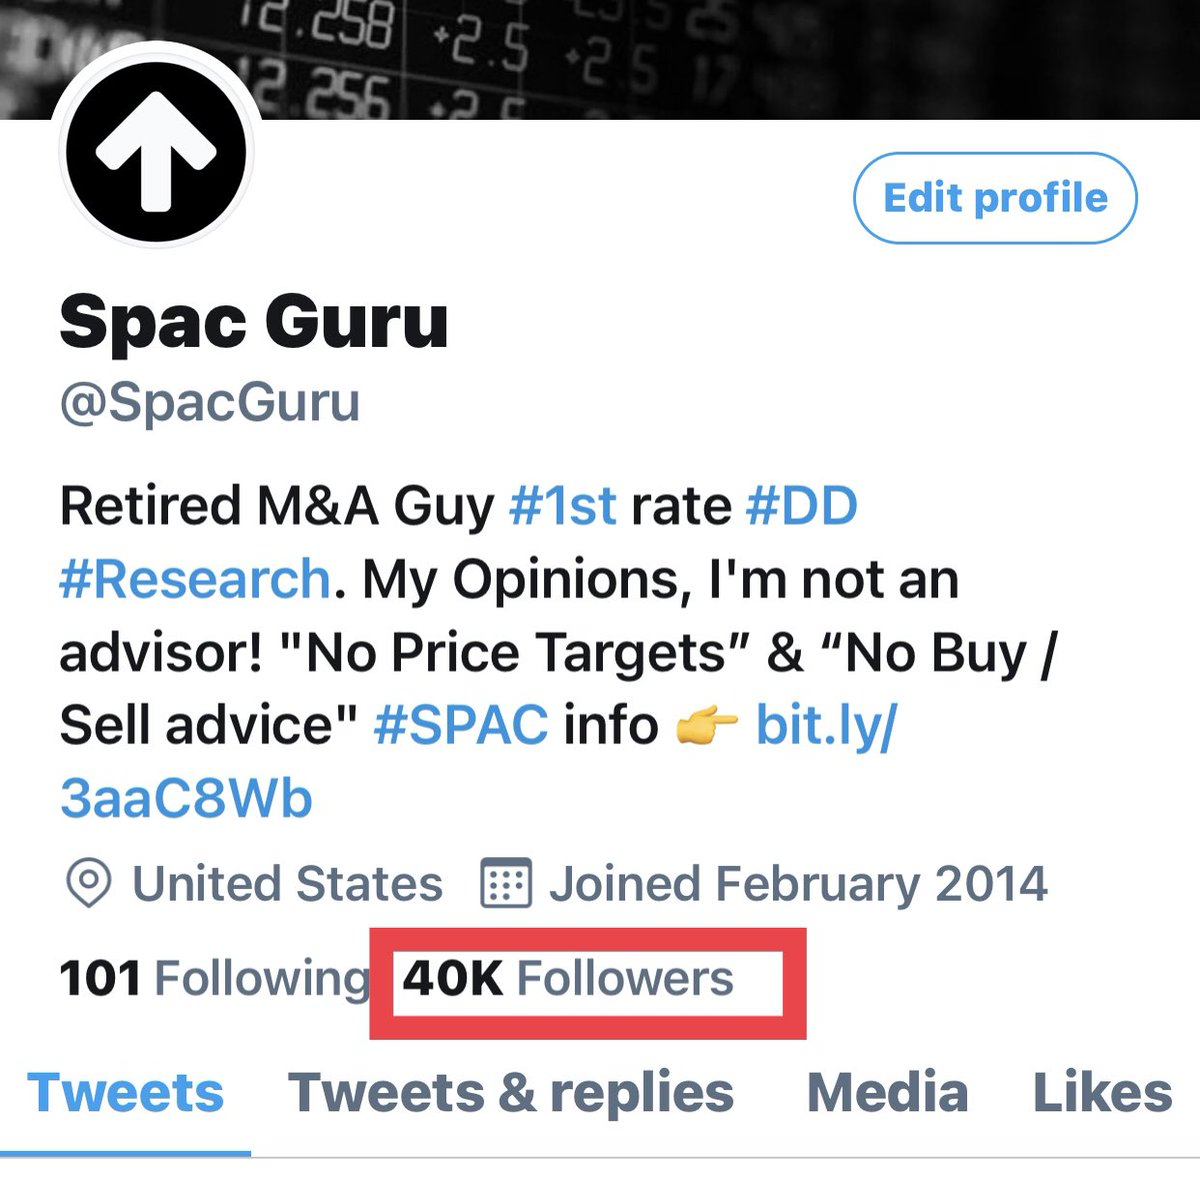 """Wow, 40,000 #Followers! This community is an absolutely amazing group of #friends, all of us working with the same goal. We respectfully discuss our #investing thoughts & """"We all win together"""" 👊 Please ask your friends to join us. #collective #Intelligence #Humbled 🙏 #Share #RT"""